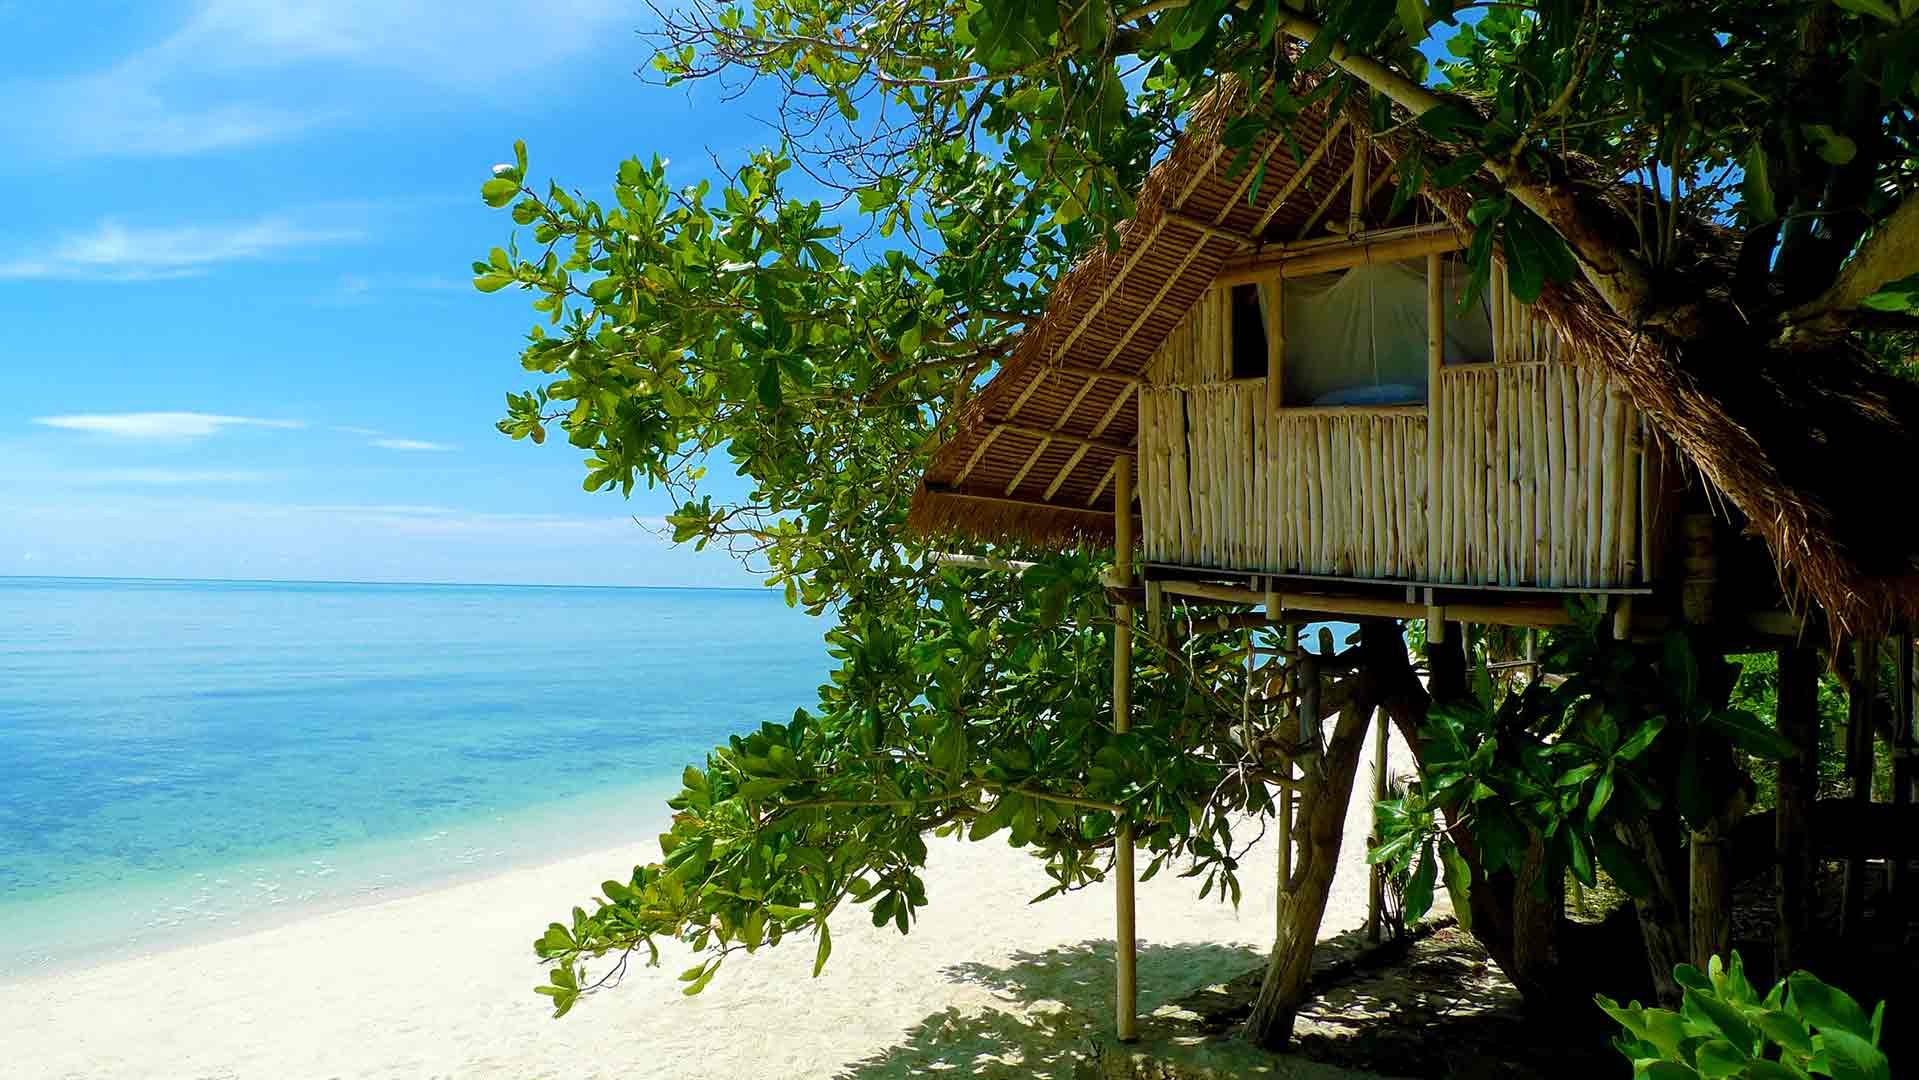 A tree house on a secluded beach